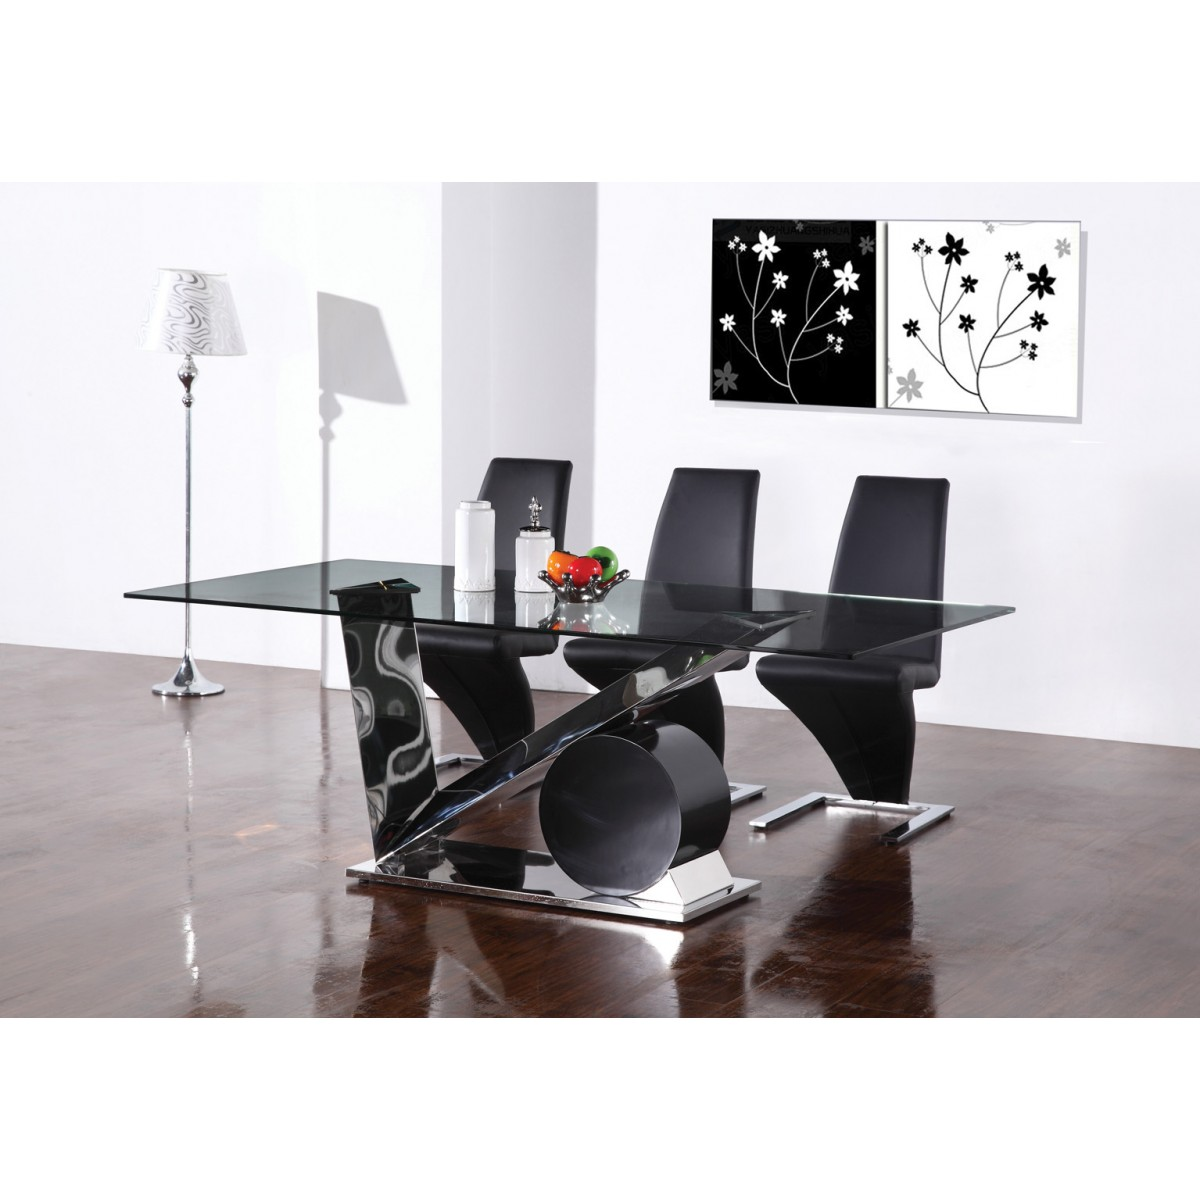 Formidable set de table pour table en verre 4 table for Set de table pour table en verre